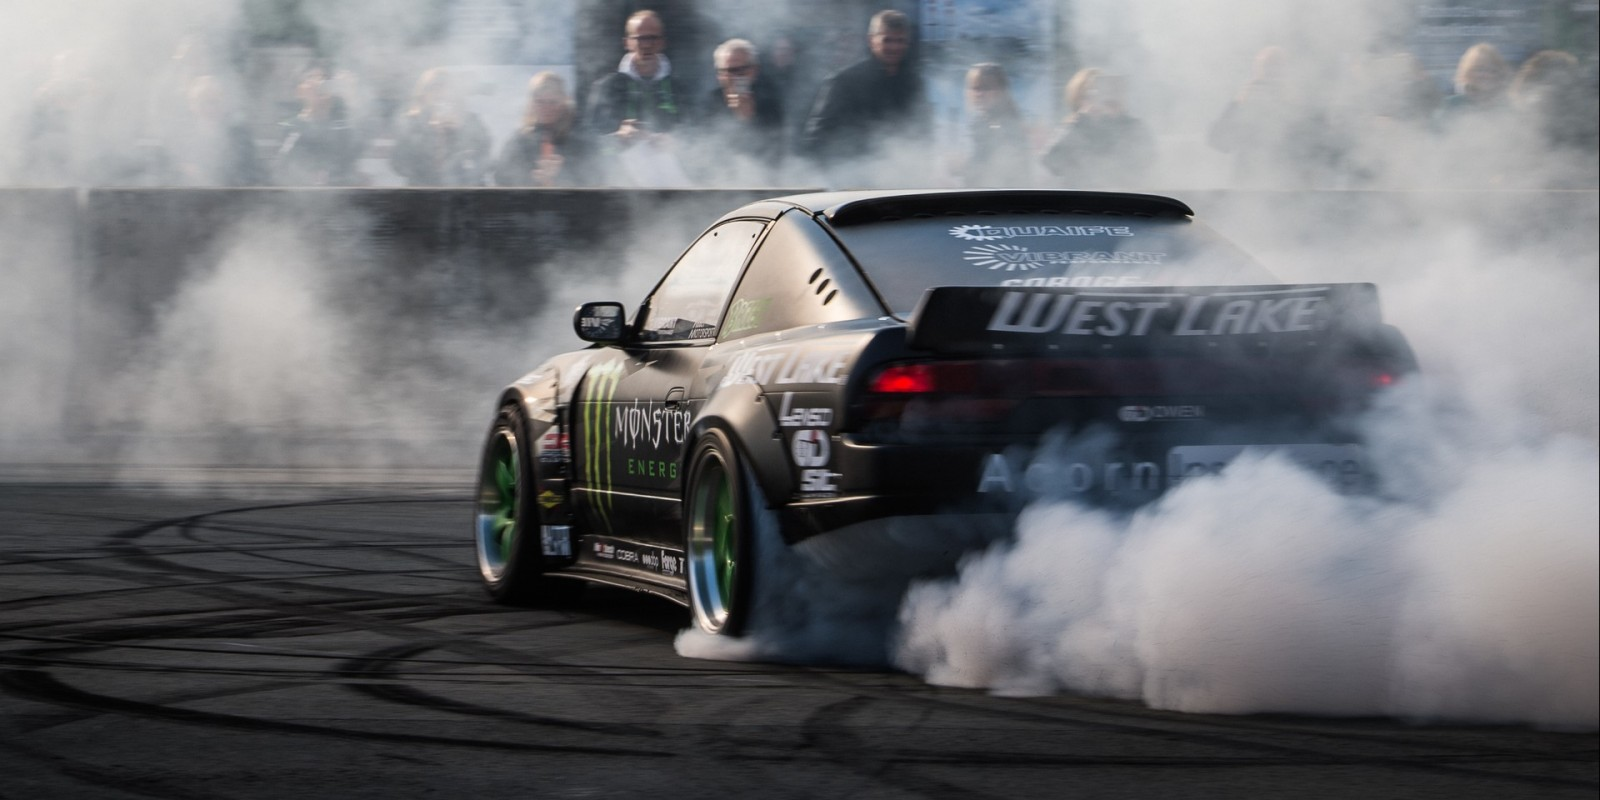 Drift Show before the Supermotocross Race at the Veltins Arena, Germany.